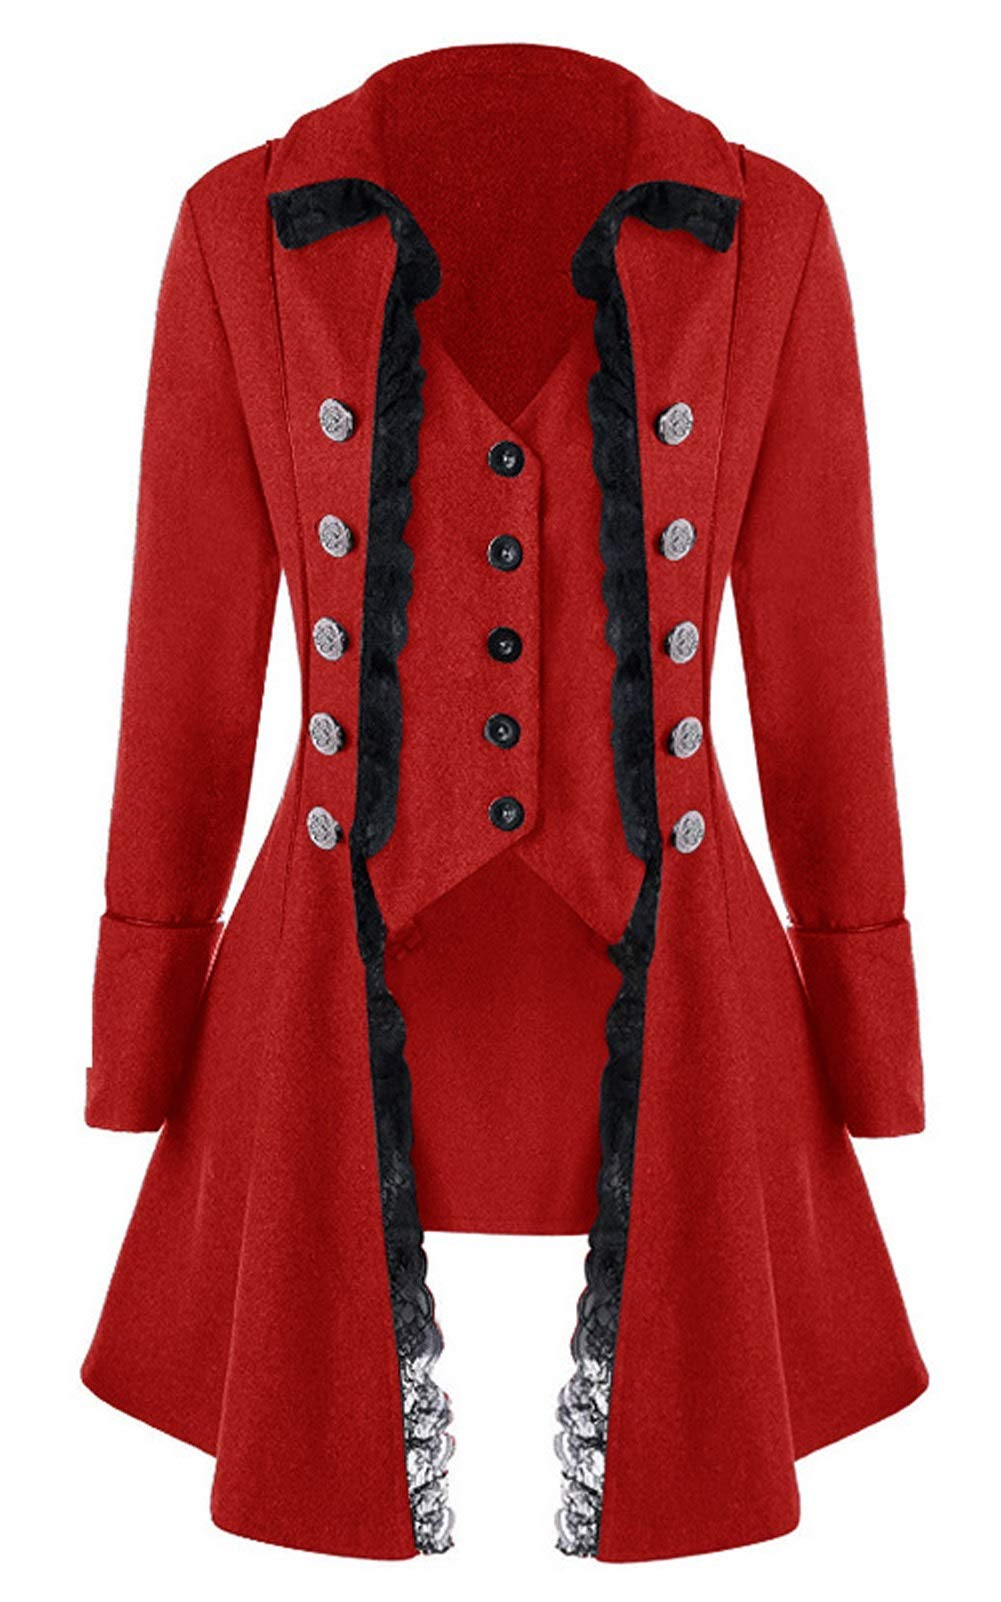 LETSQK Victorian Steampunk Gothic Corset Halloween Costume Coat Tailcoat Jacket Red XL